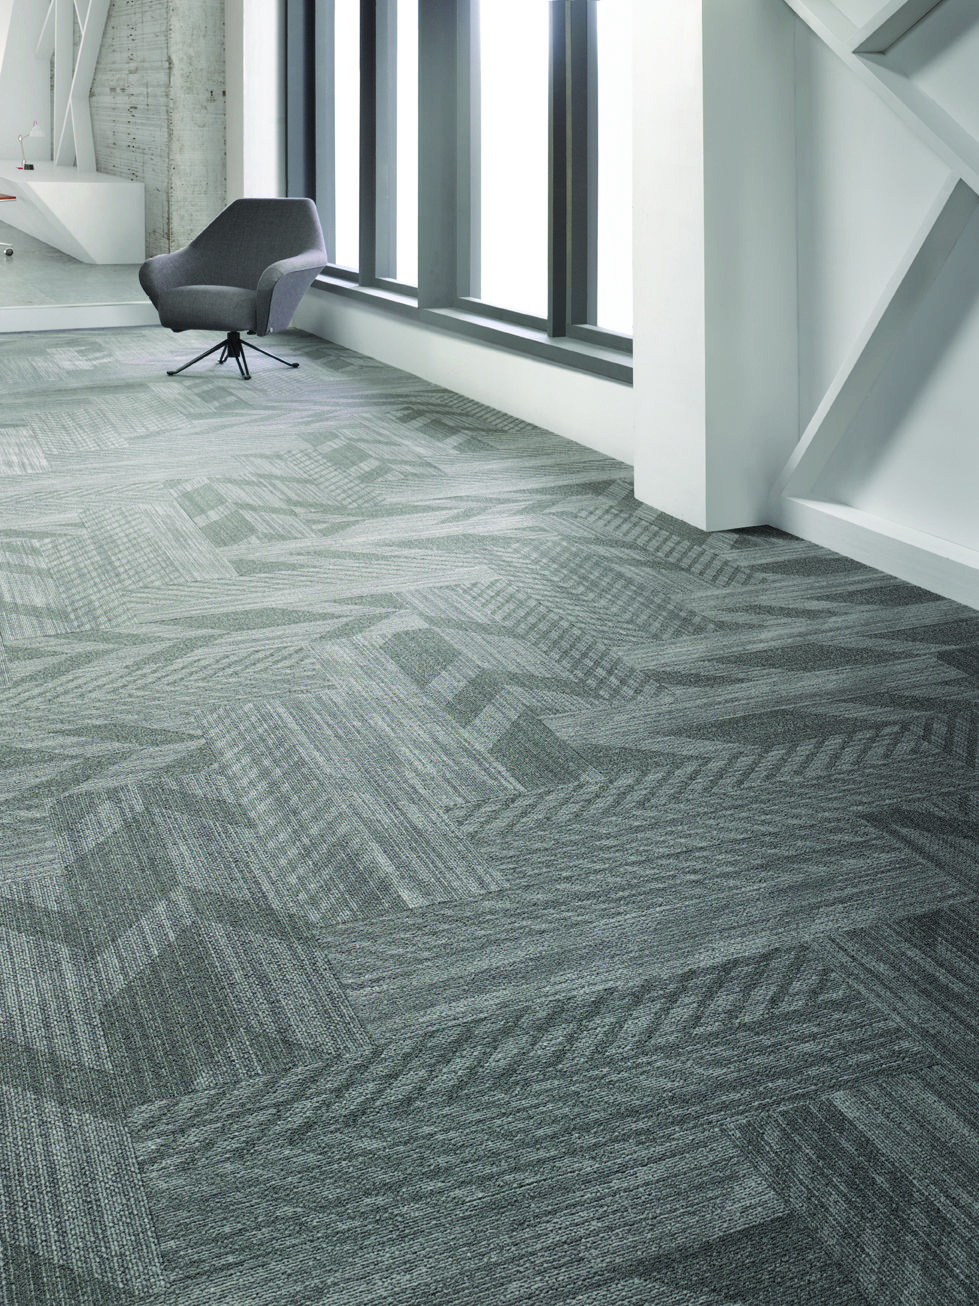 Zip It Tile 12by36 Lees Commercial Modular Carpet Carpet Tiles Bedroom Carpet Tiles Commercial Carpet